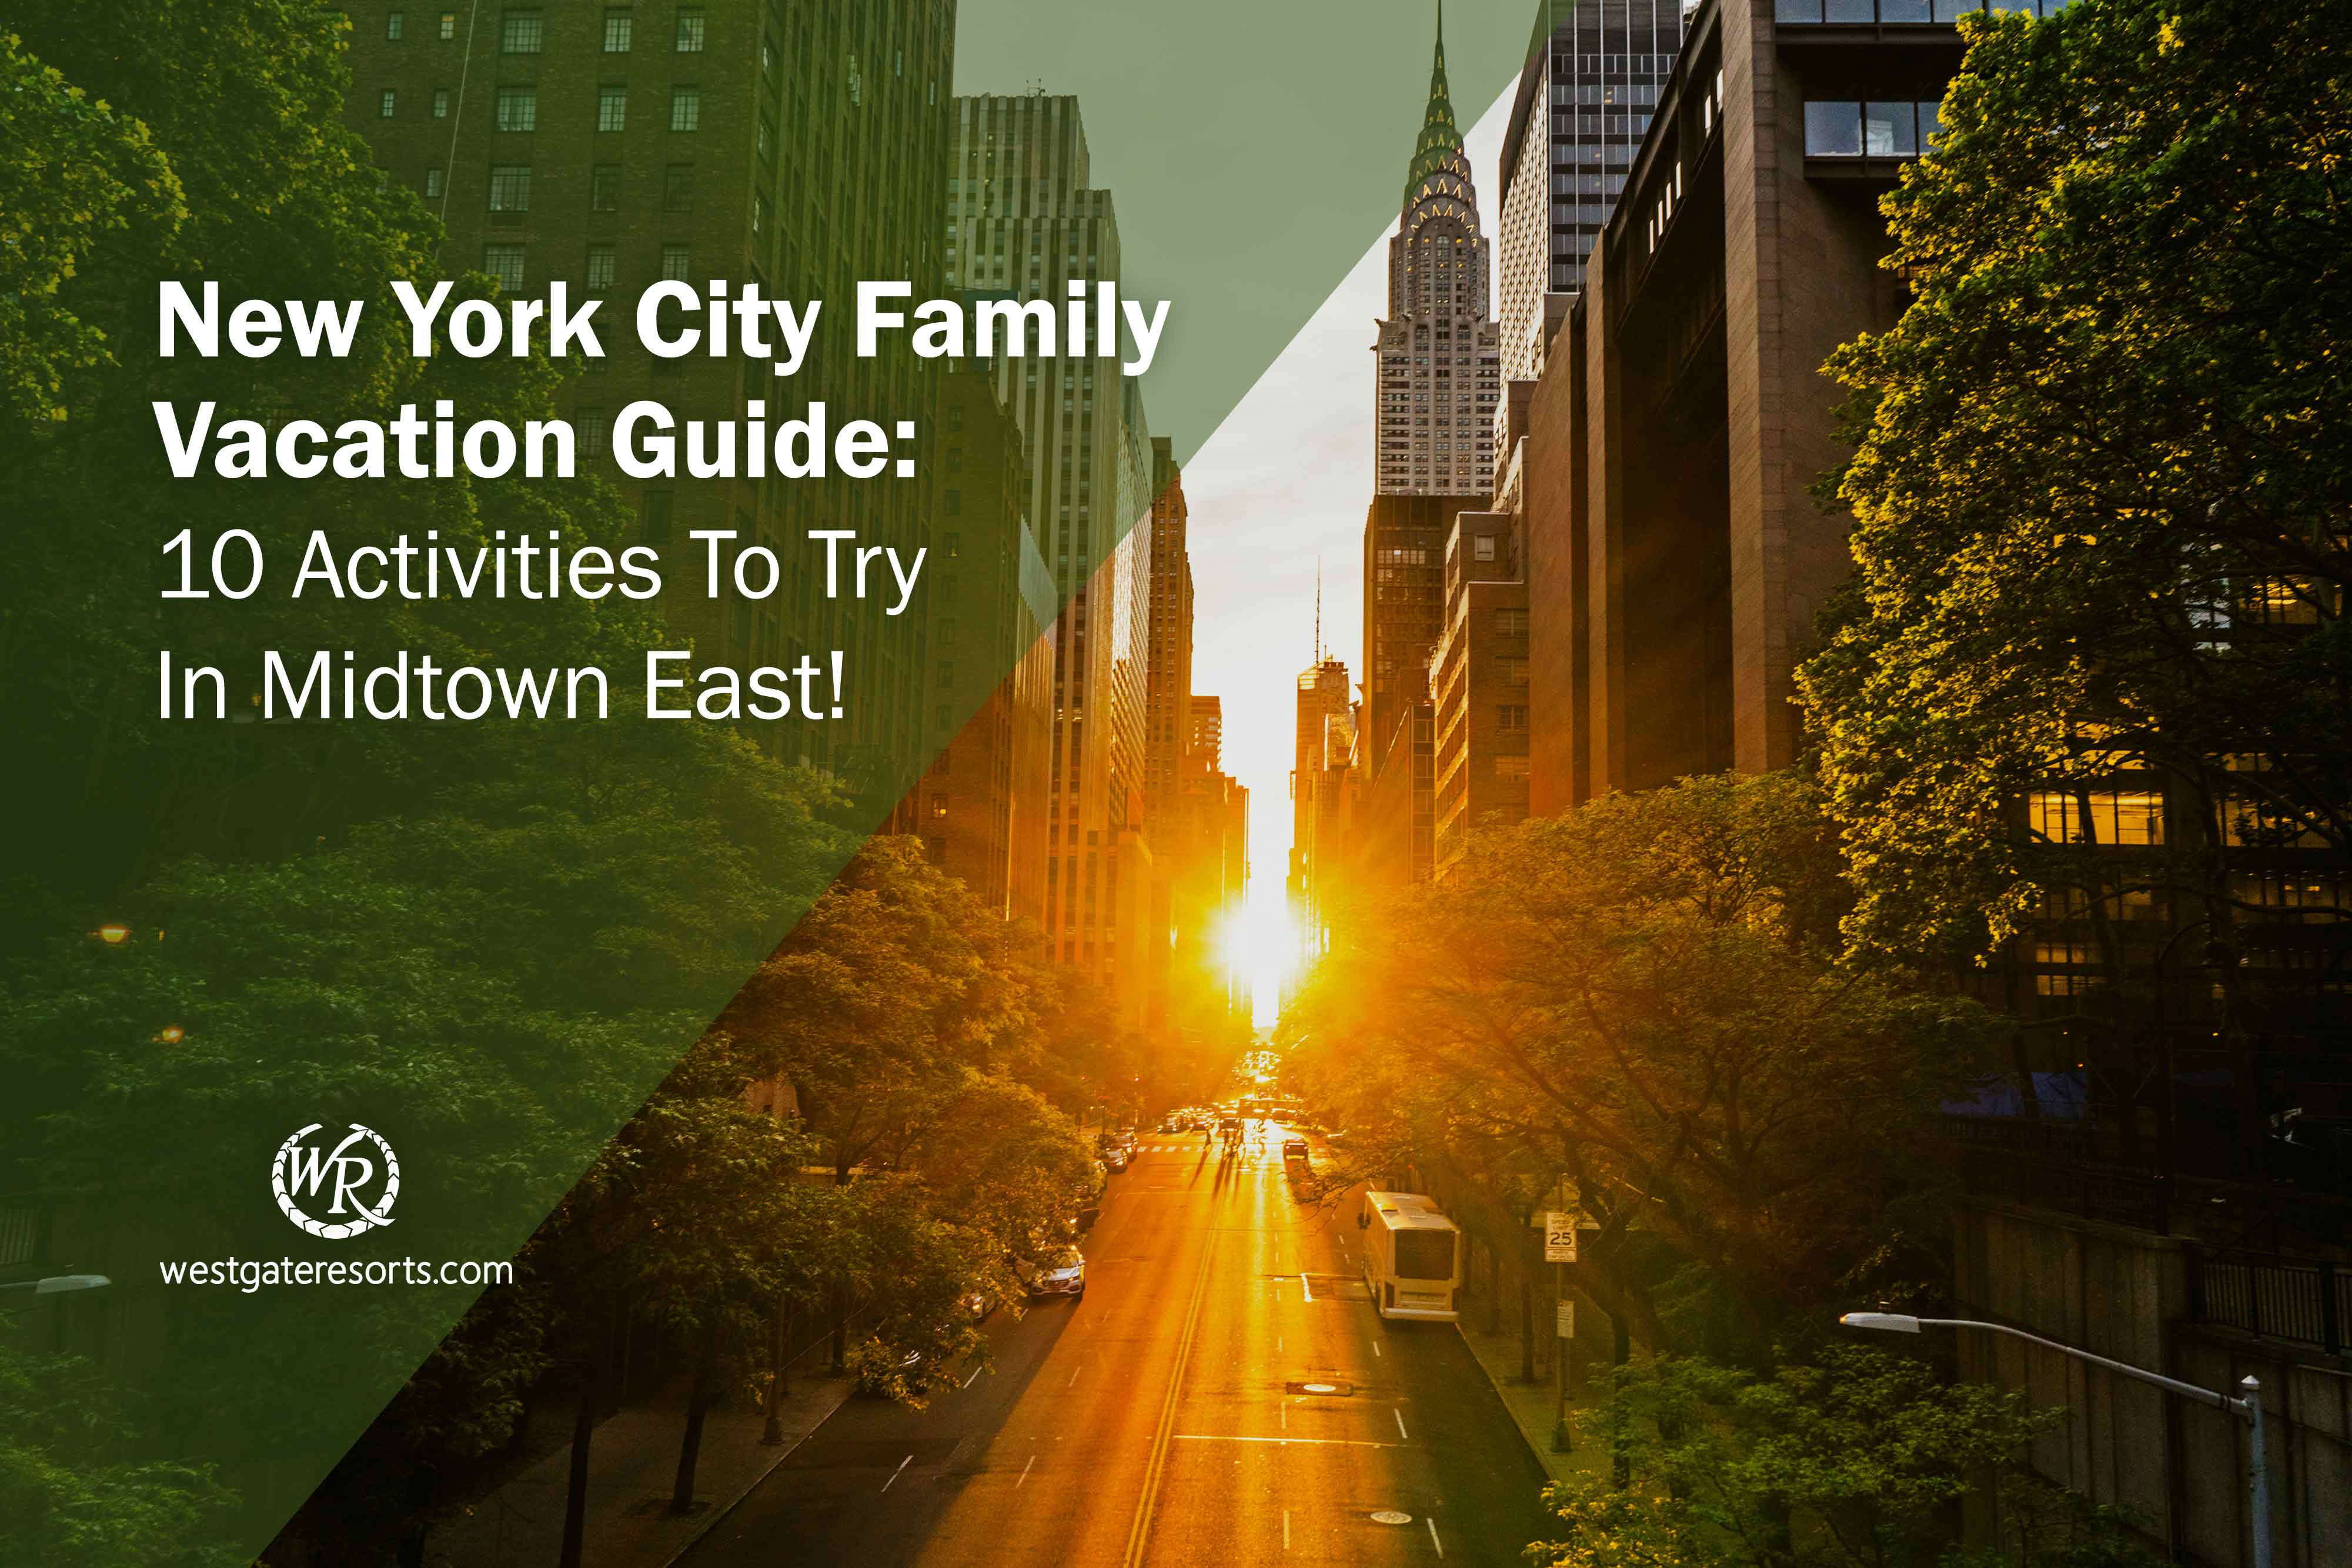 10 Activities In Midtown East For Kids | New York City Family Vacations